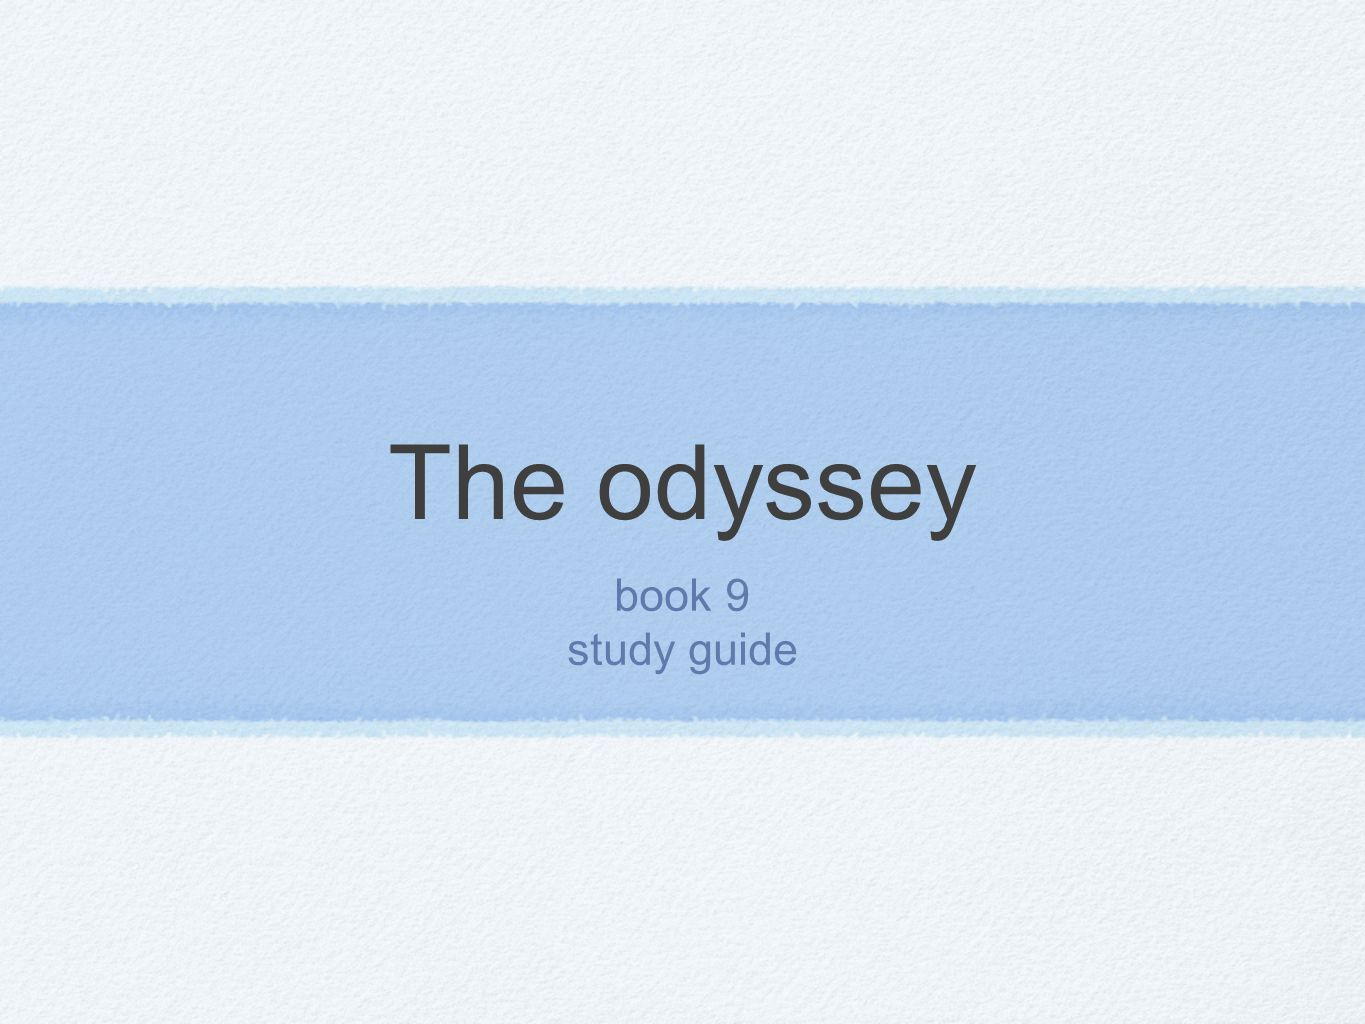 fele study guide Flashcards and Study Sets | Quizlet